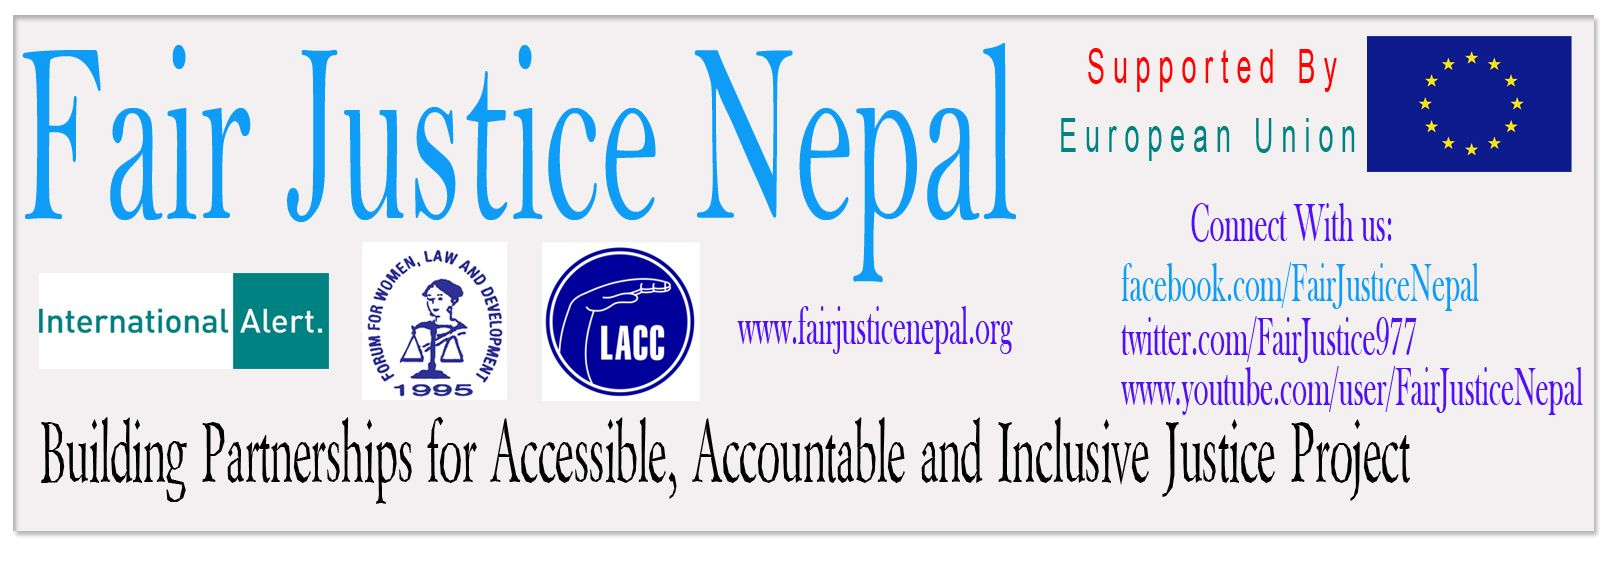 Partnerships for Accessible justice  Equality before the law and equal protection of law are the fundamental rights of Nepali citizens enshrined within the Interim Constitution of Nepal 2007. In the current transition from conflict to peace, democracy and rule of law in Nepal, it is essential that the state is seen to deliver effective, accountable and inclusive access to justice to all.